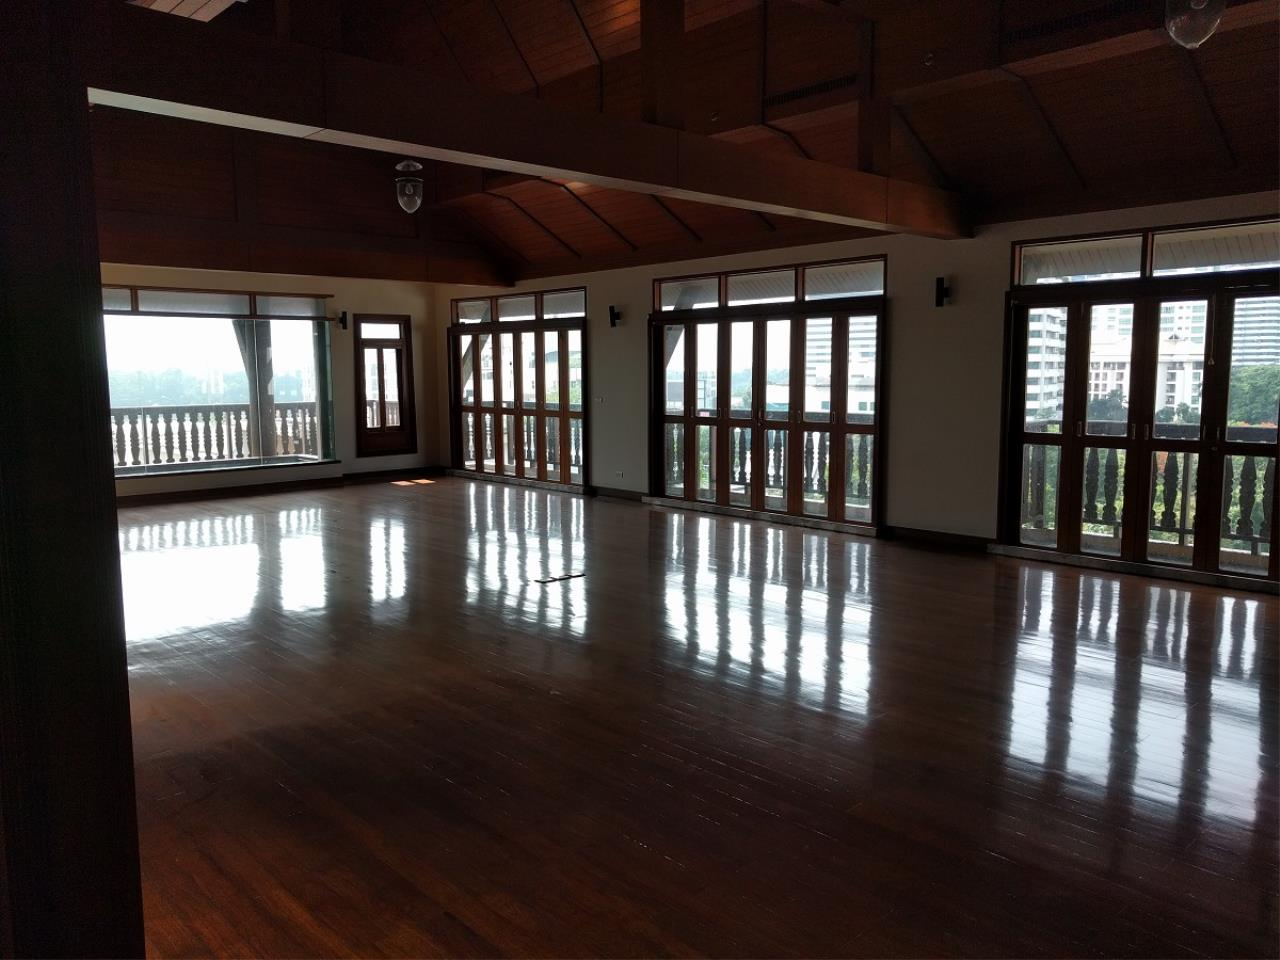 RE/MAX CondoDee Agency's Thai Elegance Luxury Condominium - Entire Building for Sale 23